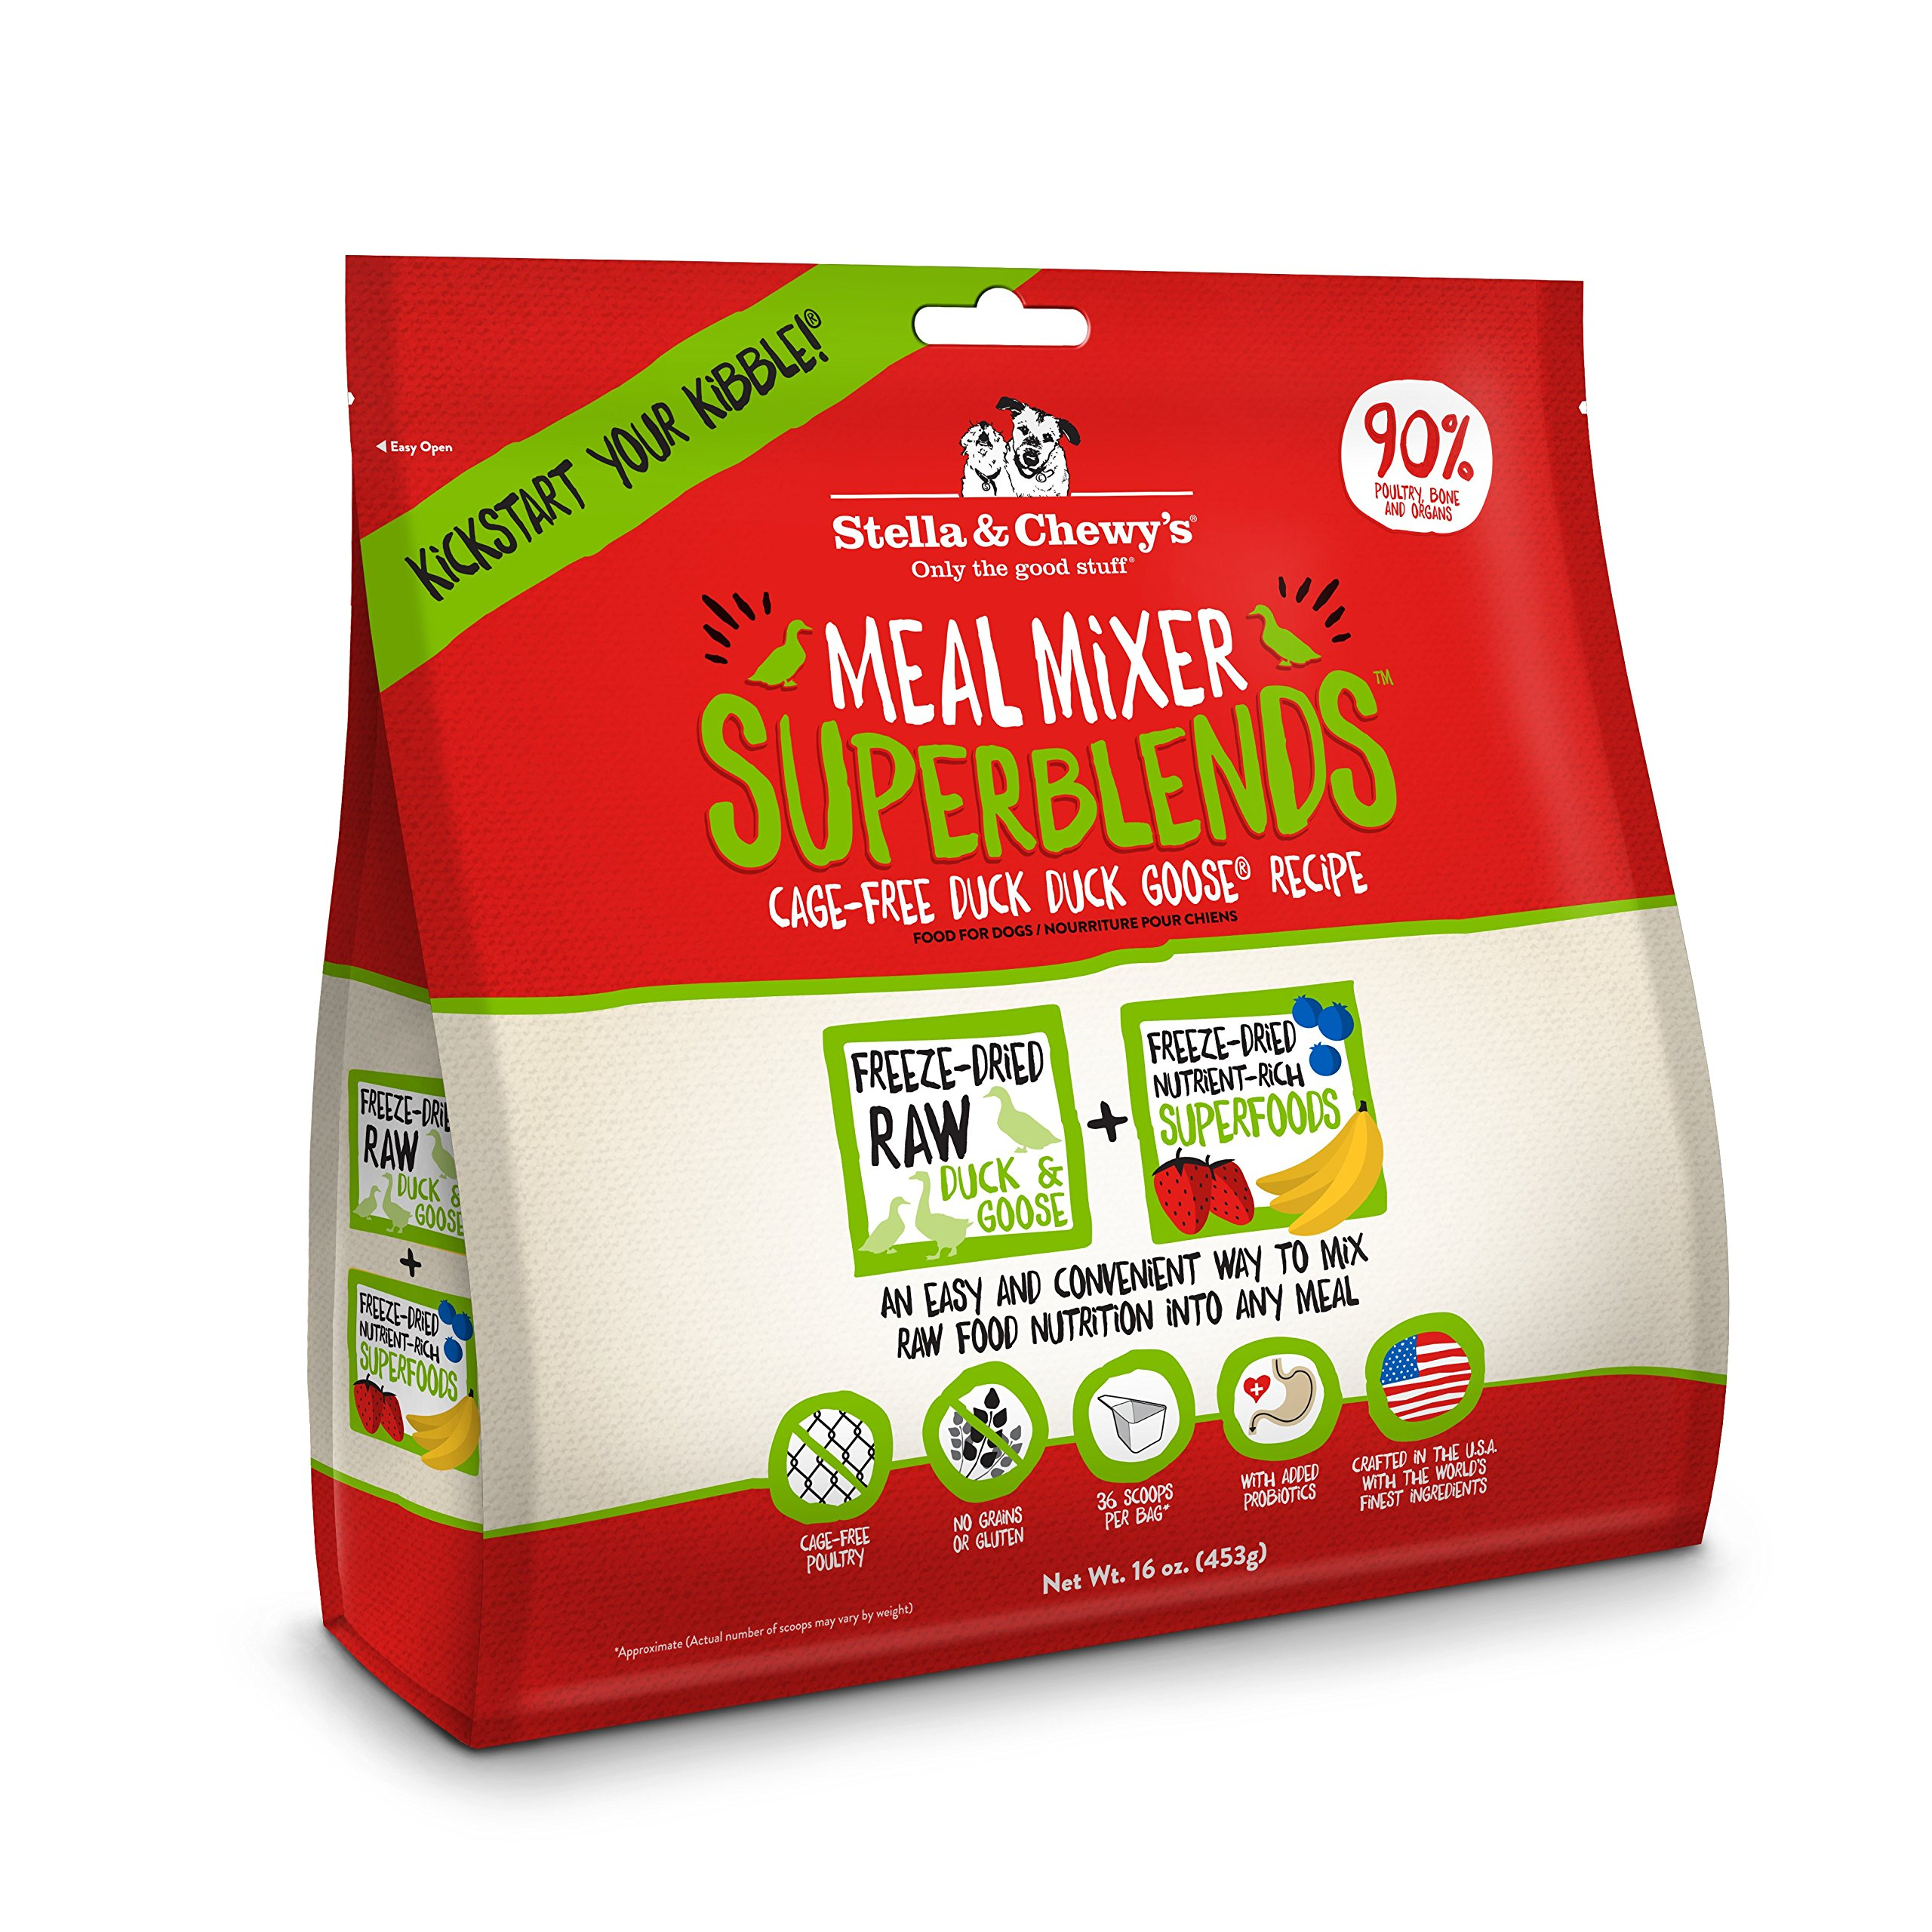 Stella & Chewy's Freeze-Dried Raw Cage-Free Duck Meal Mixer SuperBlends Grain-Free Dog Food Topper, 16 oz. bag by Stella & Chewy's